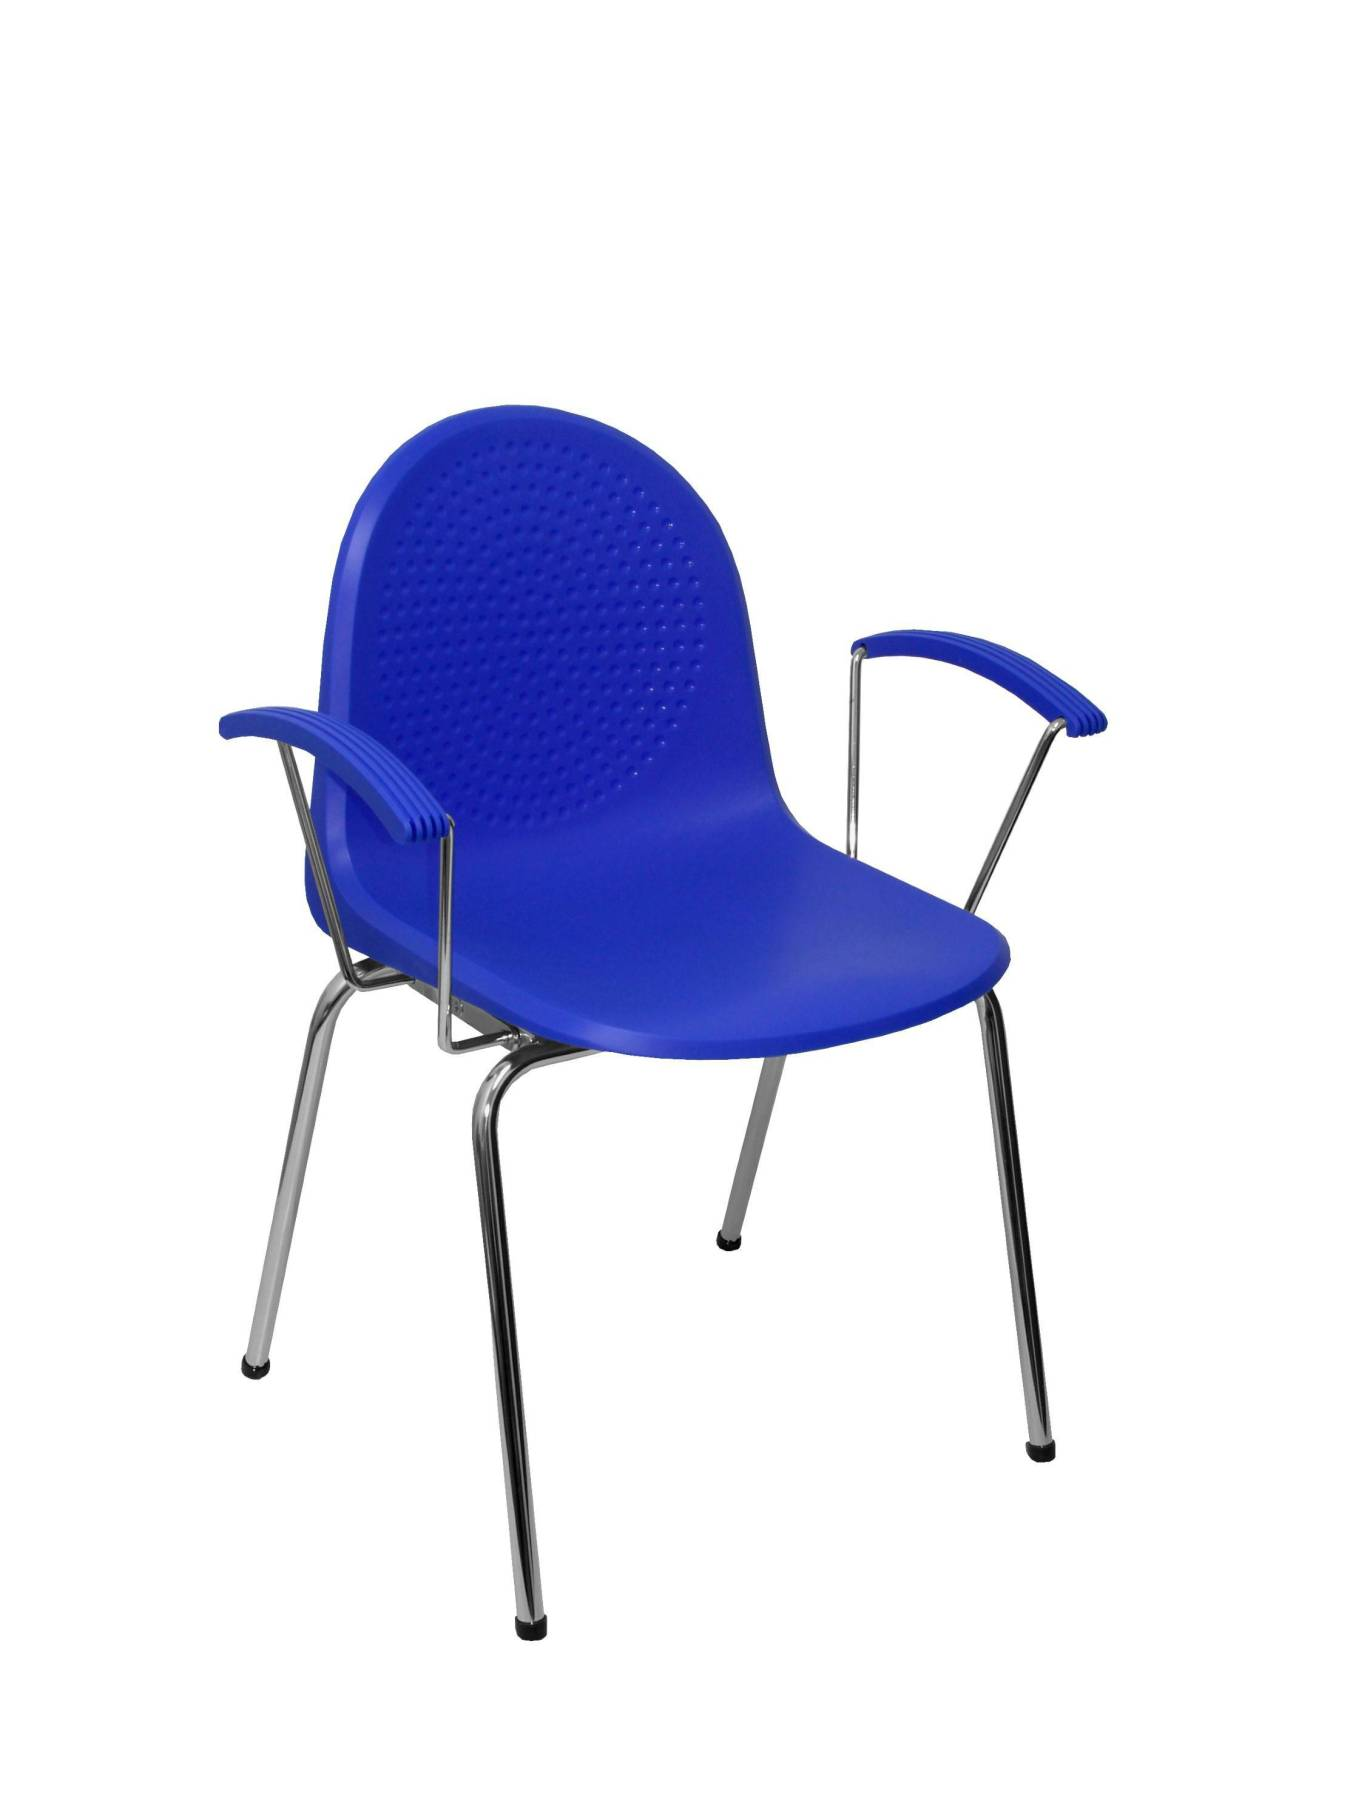 Visitor Chair Desk Ergonomic With Arms Fixed Chrome And Plastic Chrome Bold Up Seat And Backstop Structure Color AZ